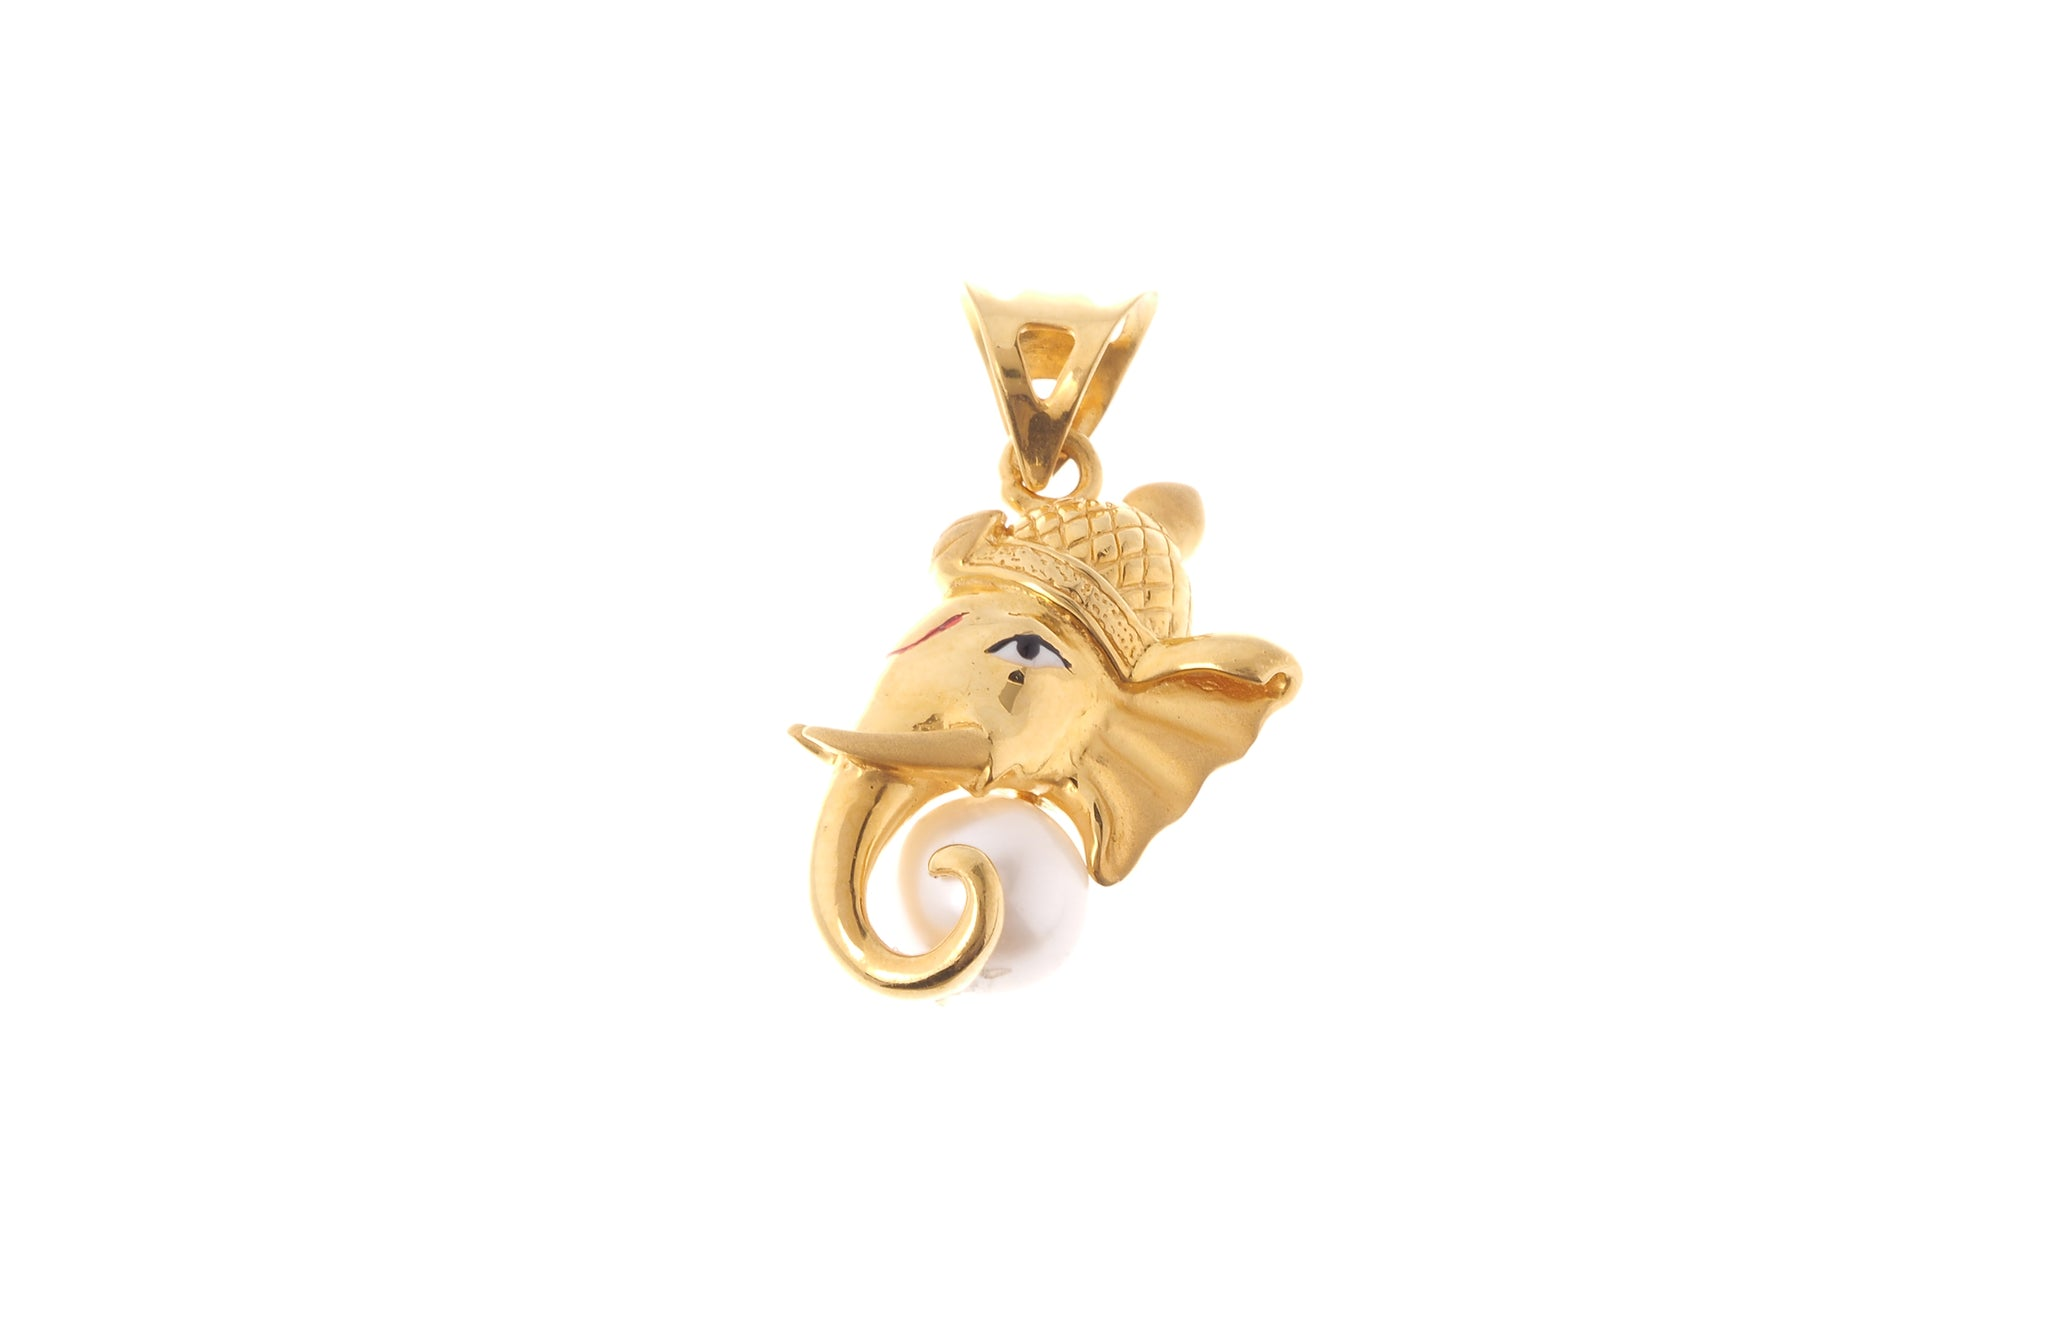 22ct gold cultured pearl ganesh pendant 41g p 6579 minar 22ct gold cultured pearl ganesh pendant 41g p 6579 aloadofball Choice Image